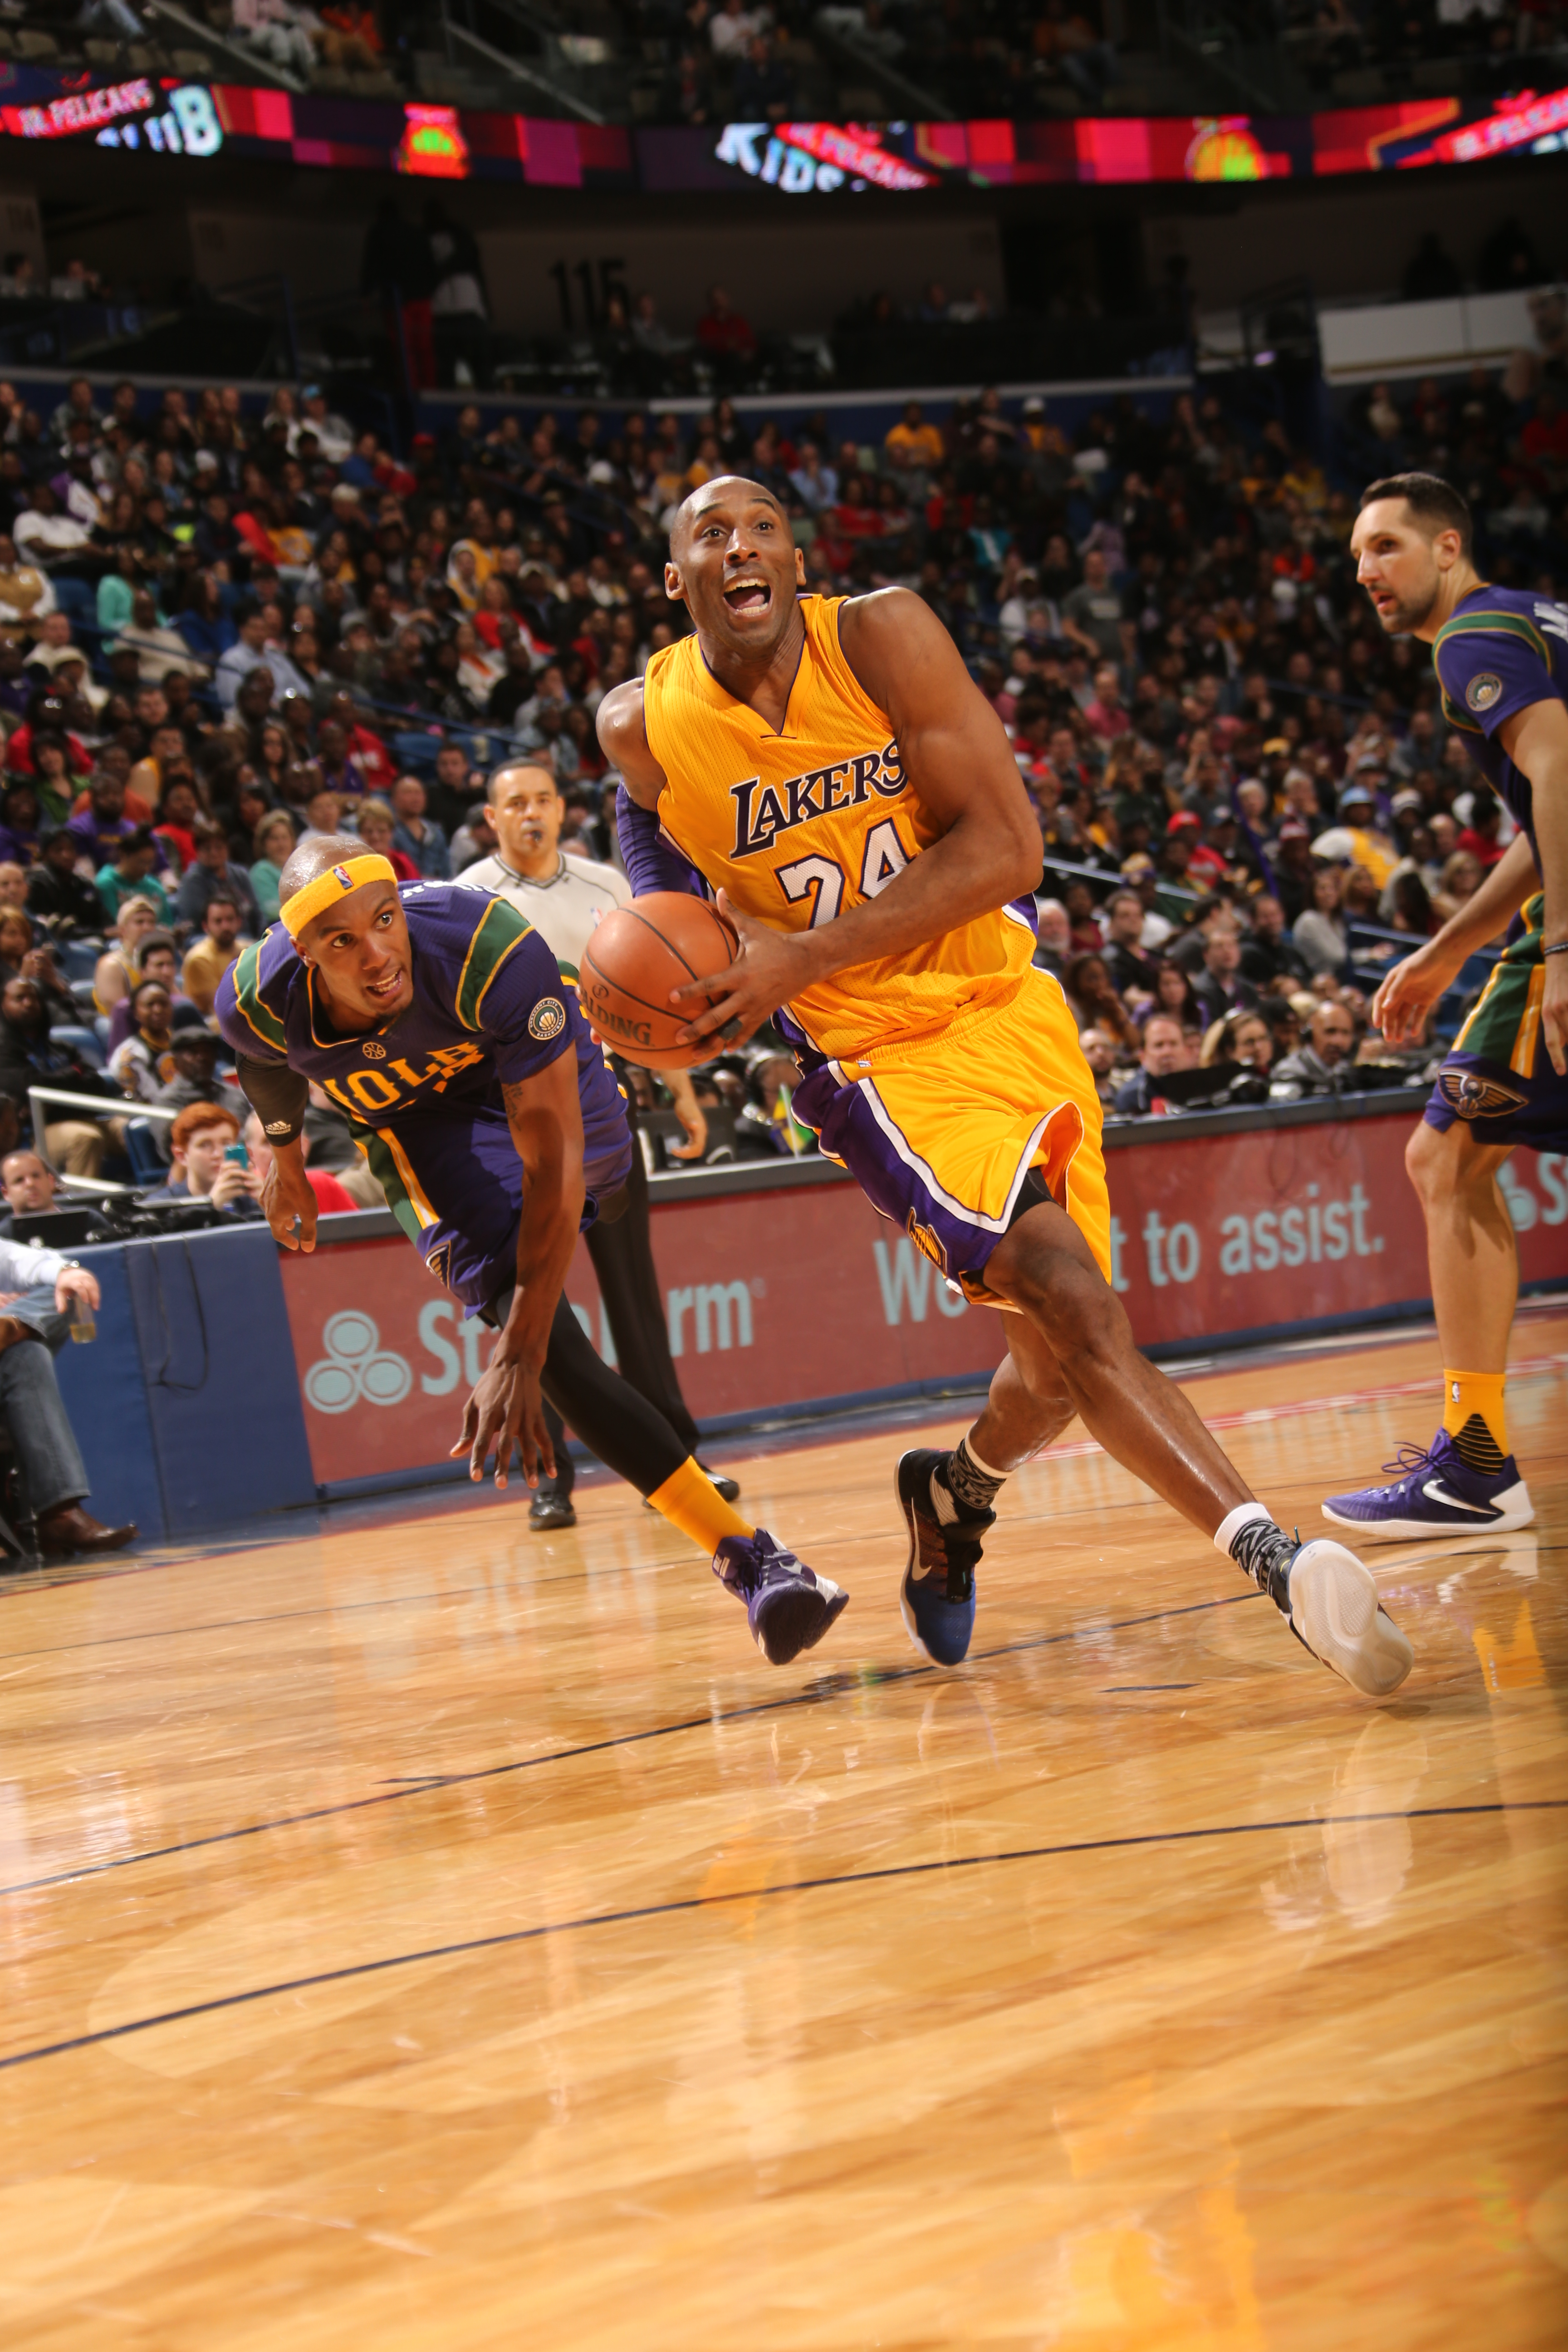 NEW ORLEANS, LA - FEBRUARY 4:  Kobe Bryant #24 of the Los Angeles Lakers drives to the basket against the New Orleans Pelicans on February 4, 2016 at the Smoothie King Center in New Orleans, Louisiana. (Photo by Layne Murdoch/NBAE via Getty Images)